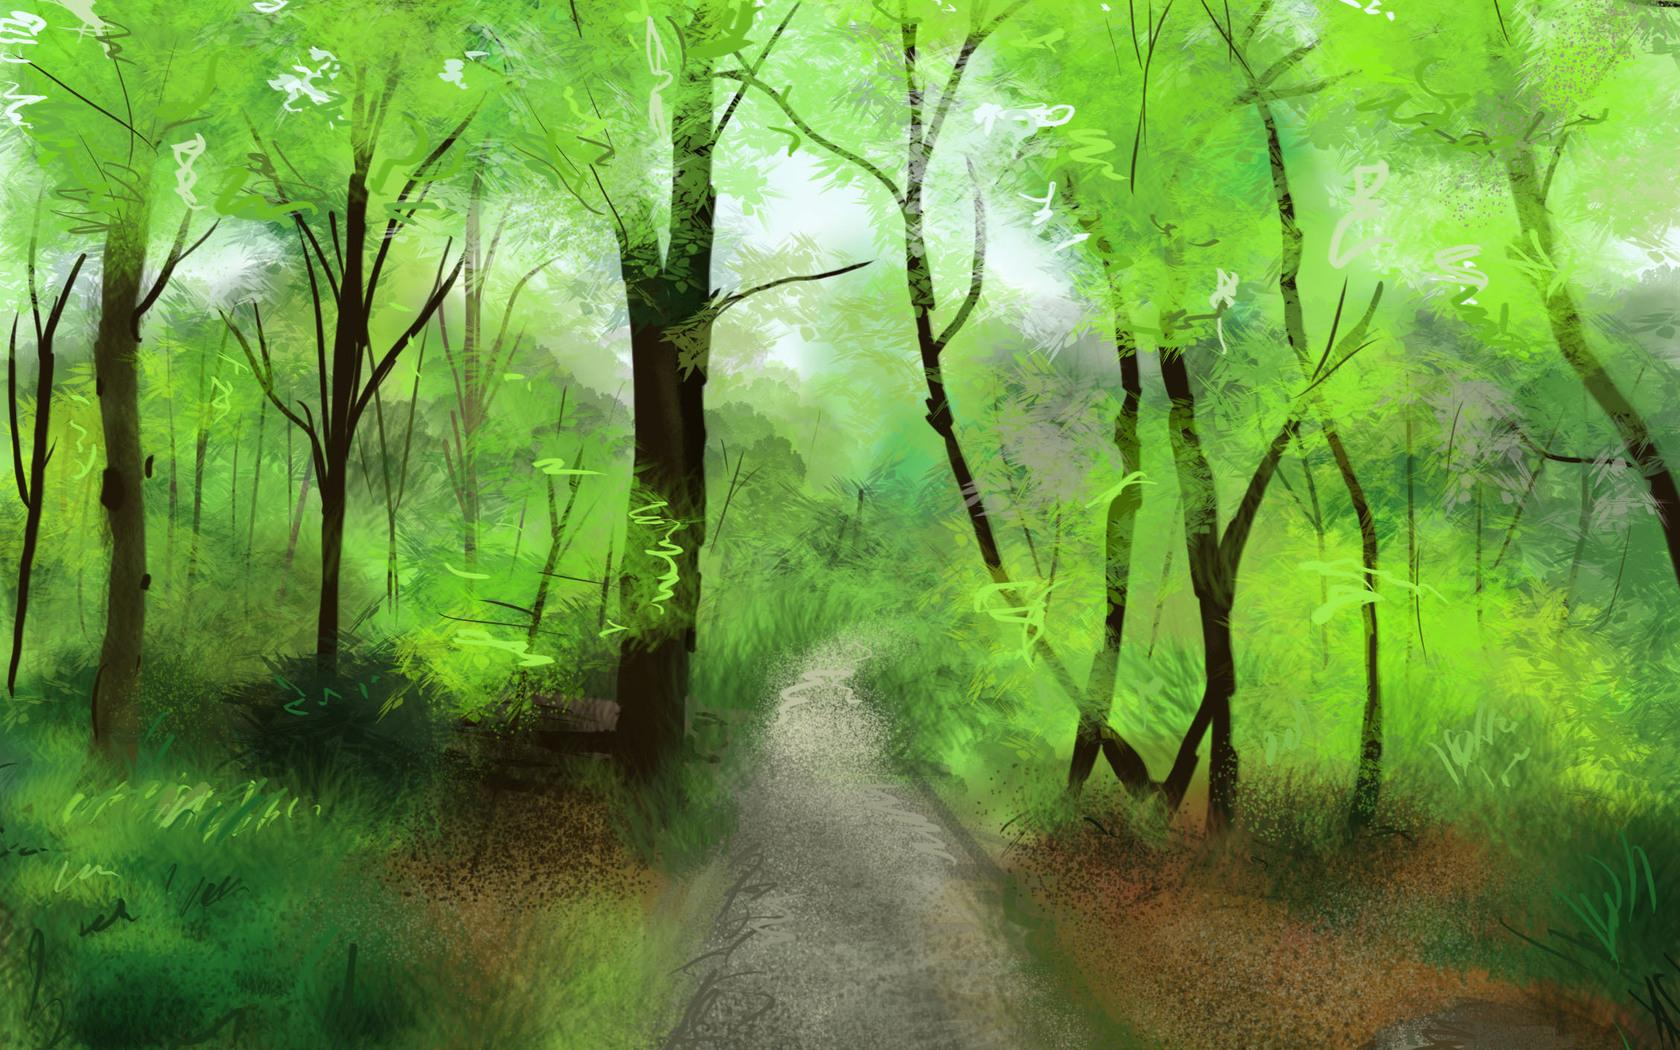 Forest Artistic wallpapers HD quality